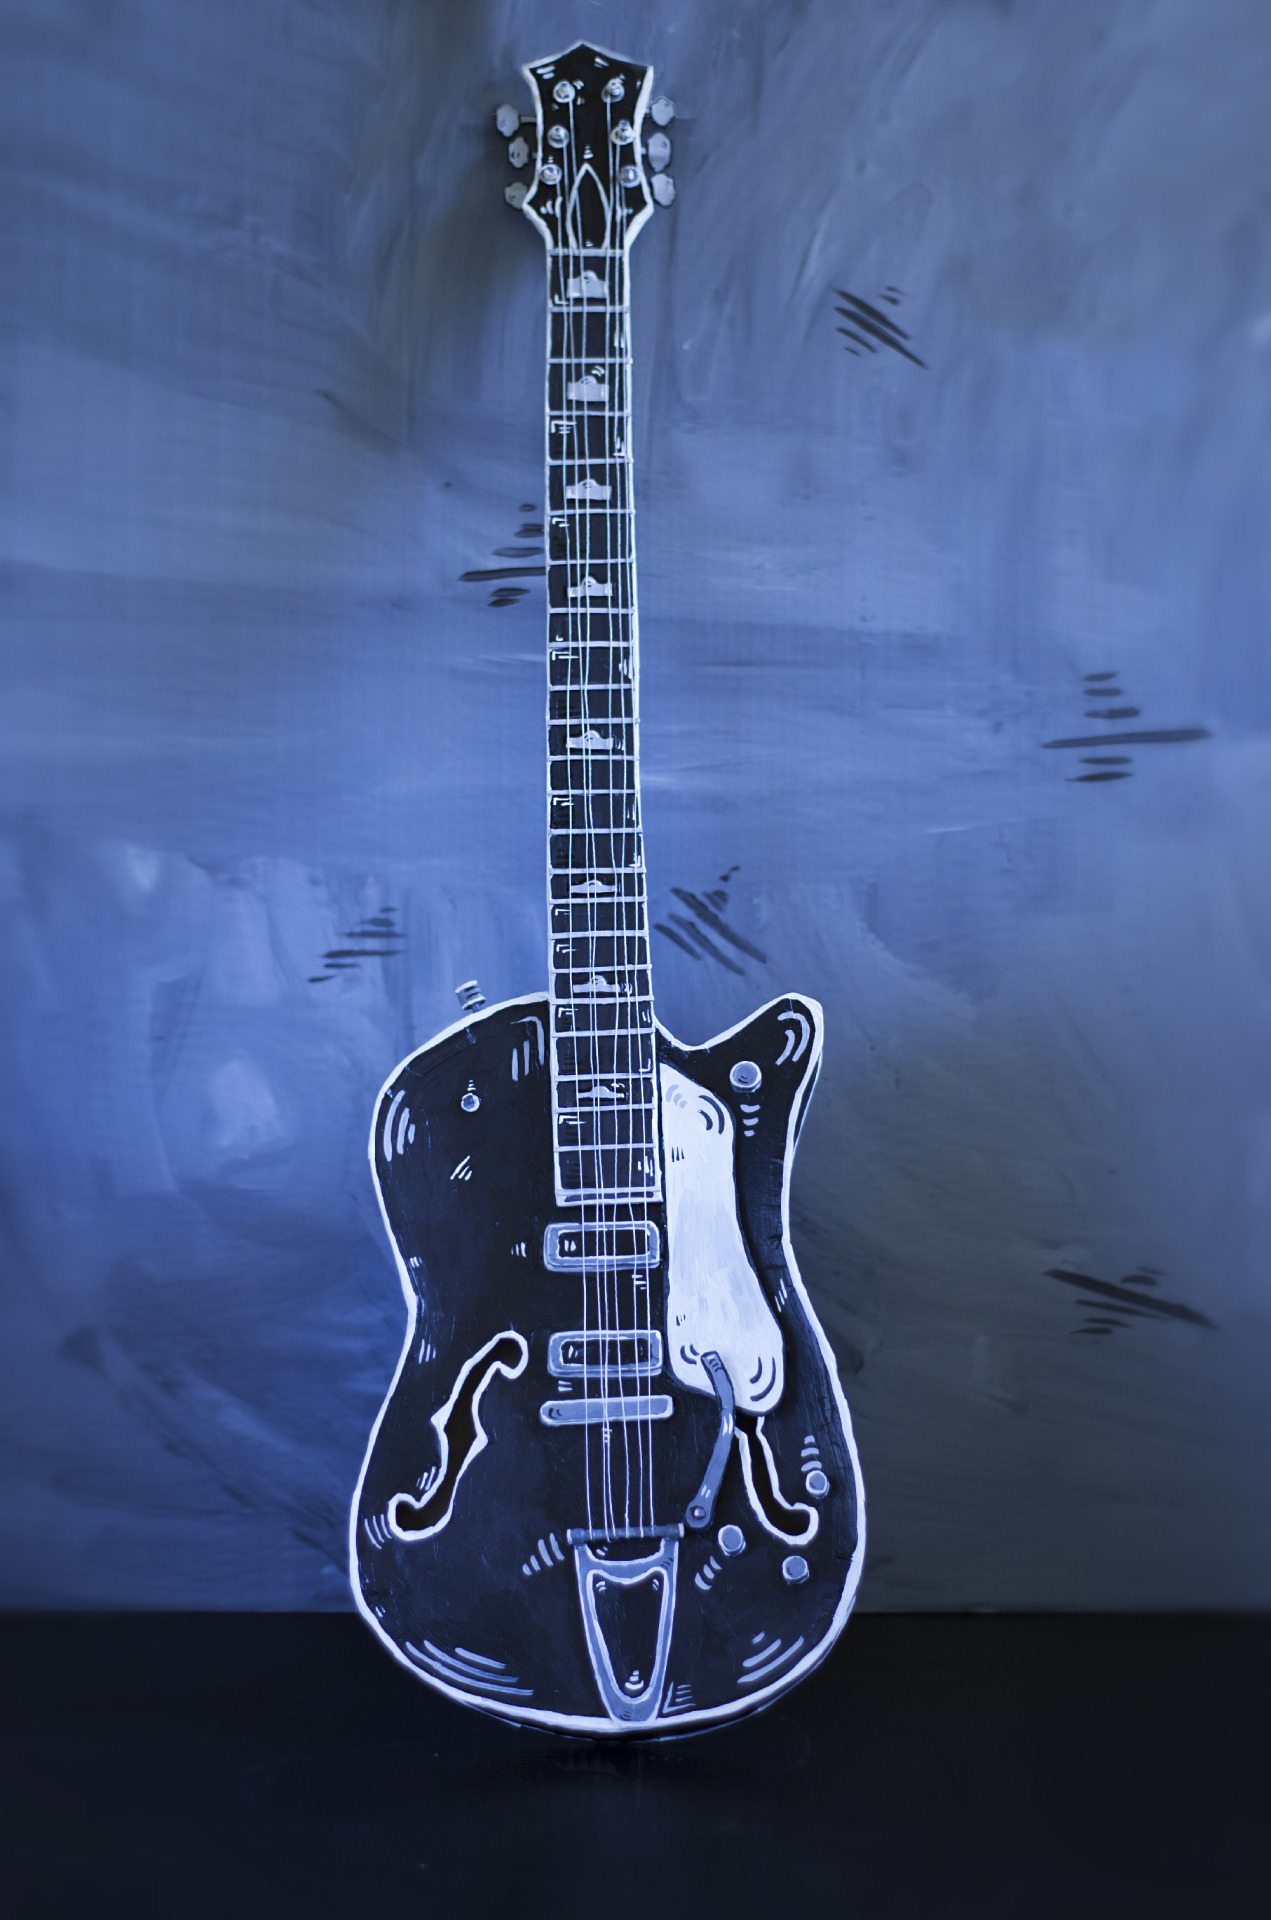 Incredible Vintage Works Fashioned in Painted Cardboard by Dosshaus - Guitar